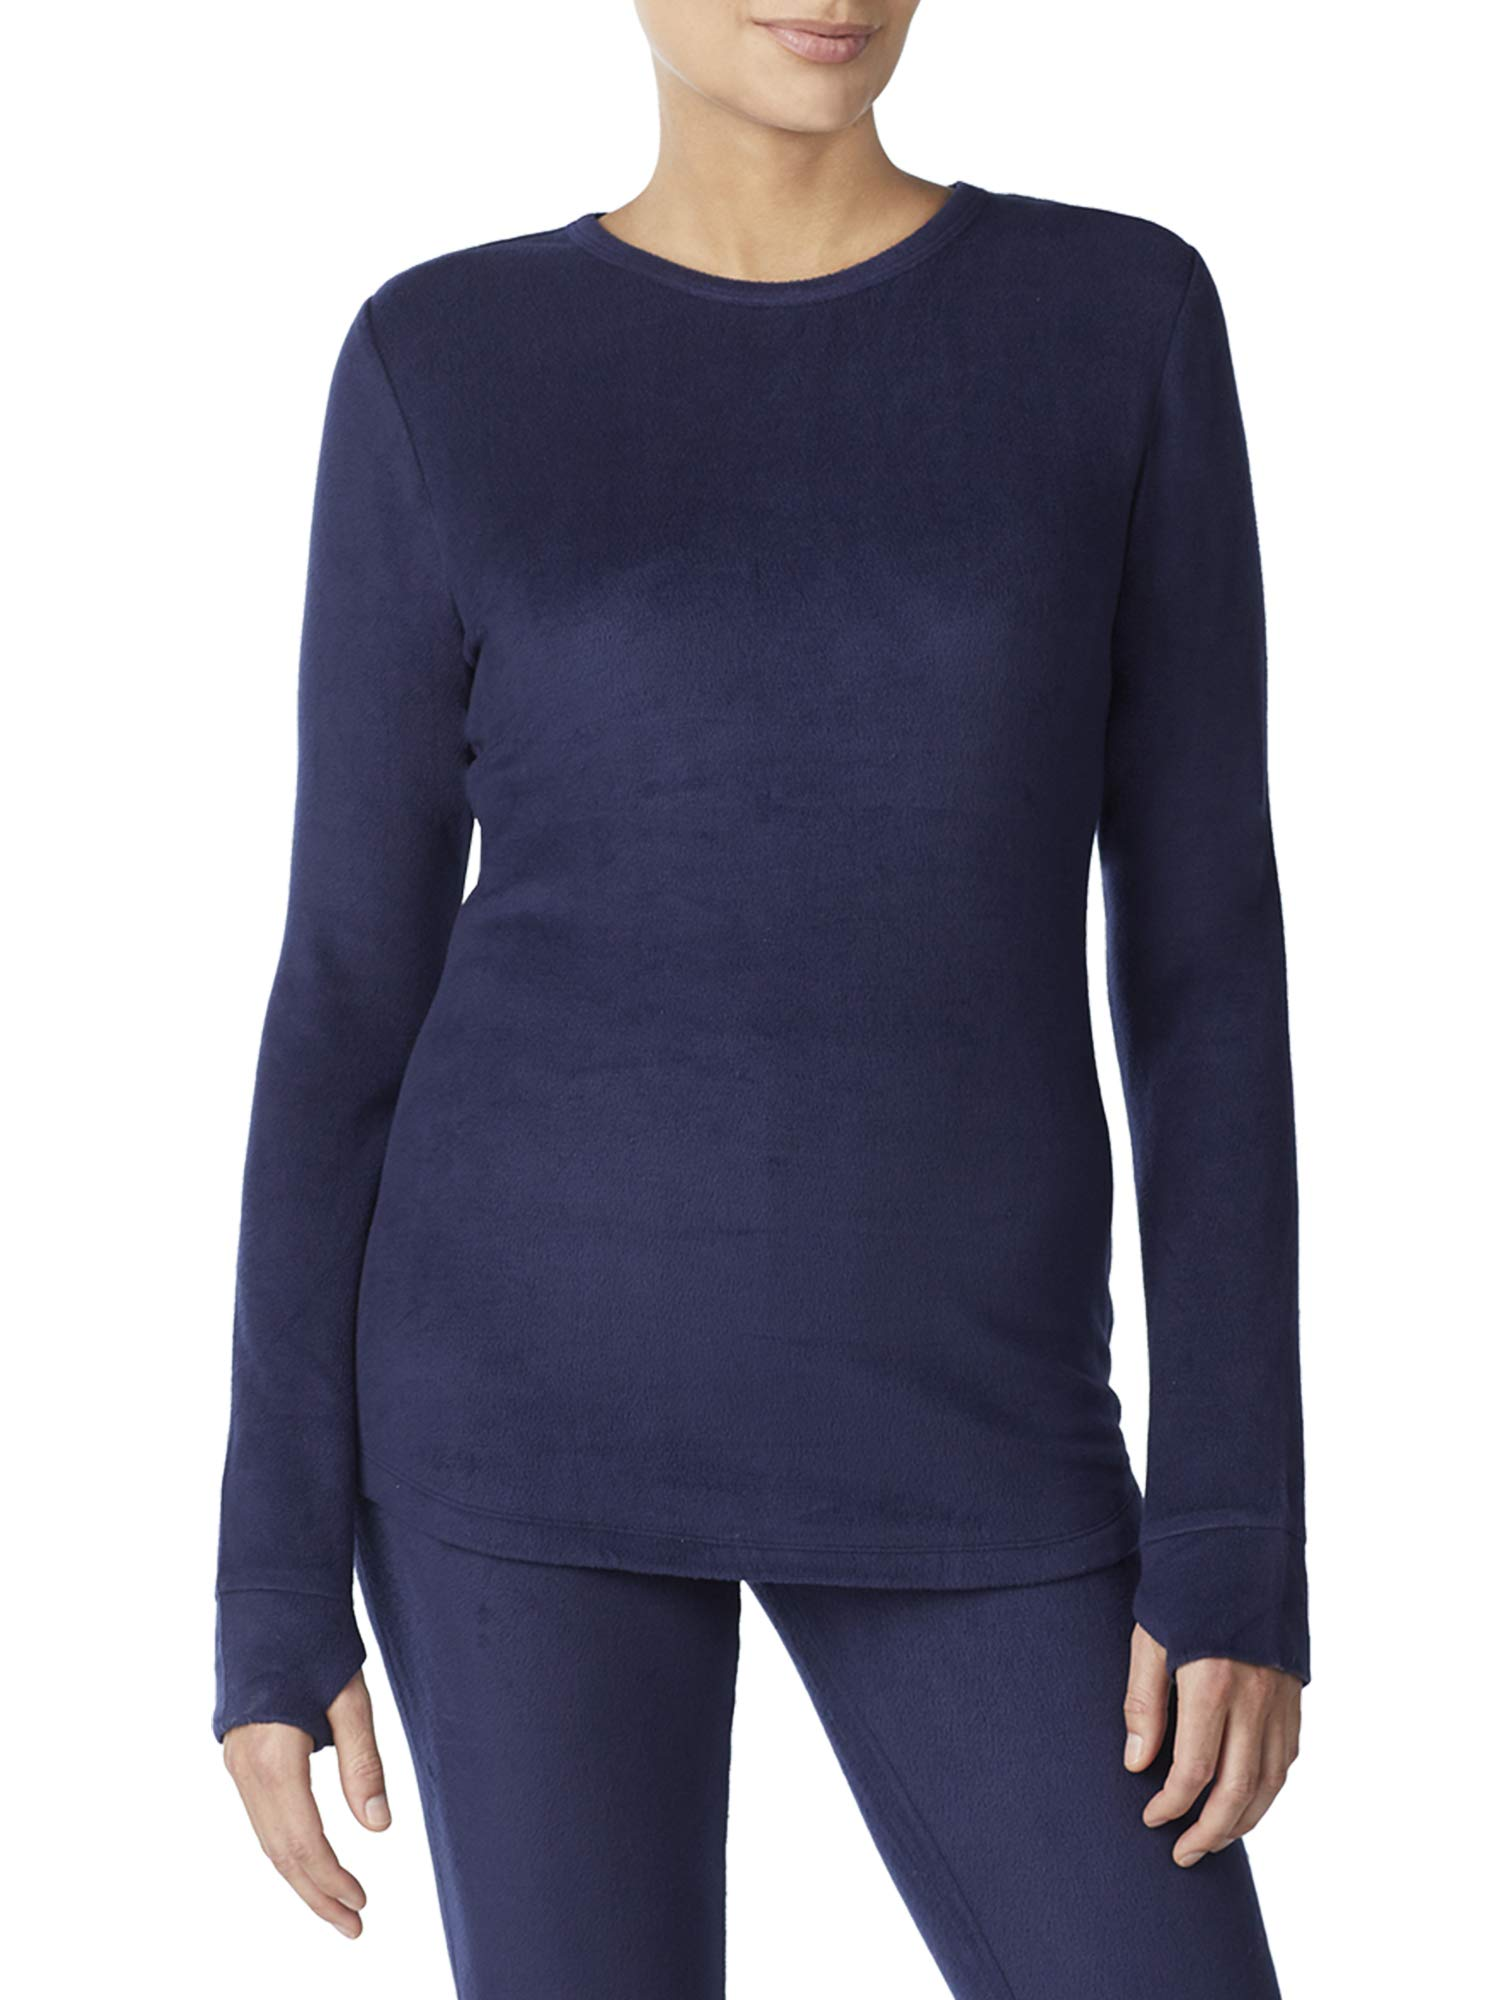 Cuddl Duds ClimateRight Womens Stretch Fleece Warm Underwear Long Sleeves Top (S - Navy) by Cuddl Duds